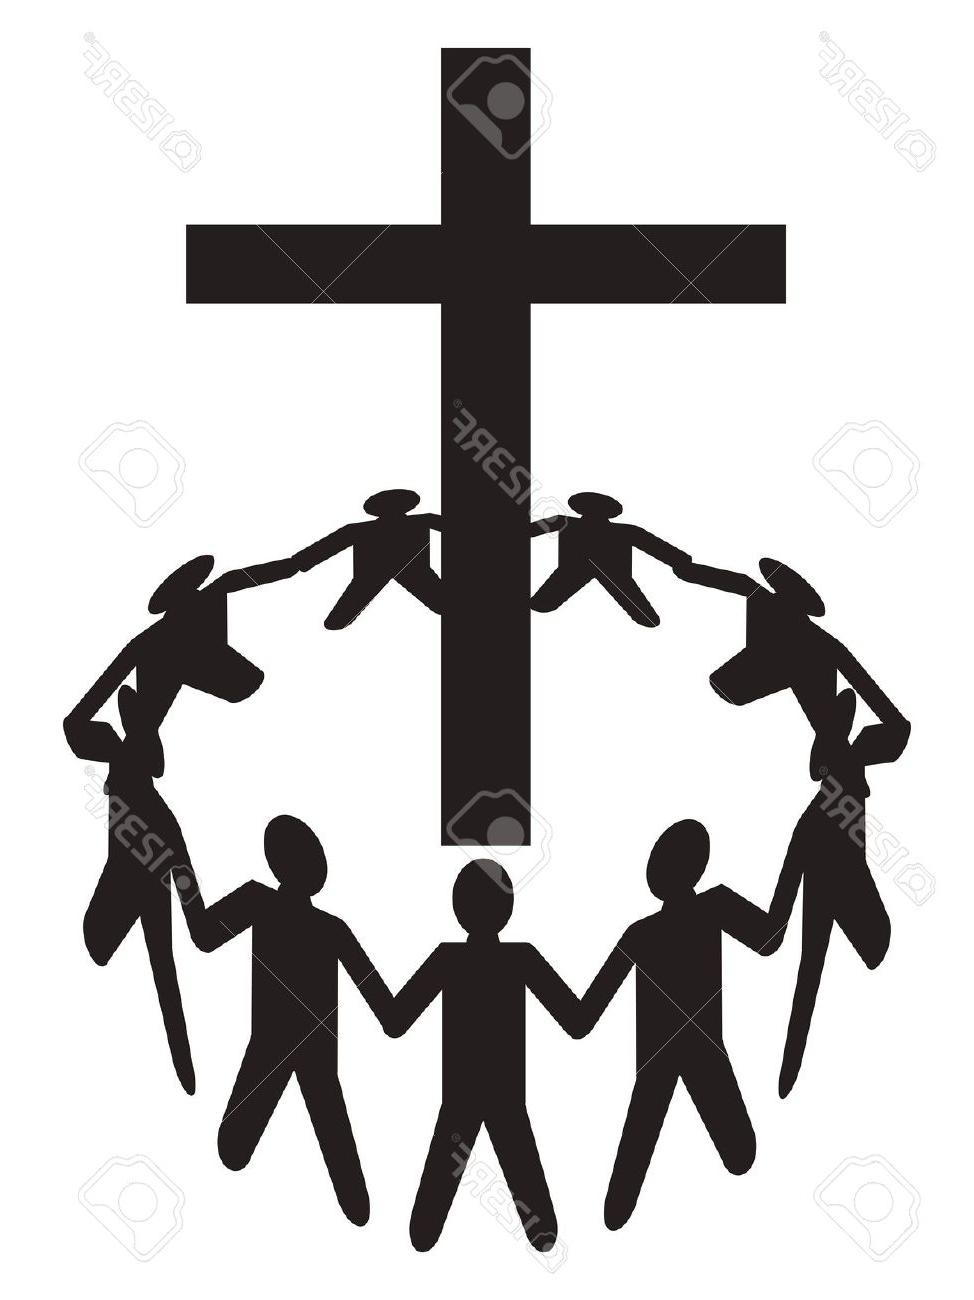 974x1300 Best 15 Praise Clip Art Vector Group Of People Image